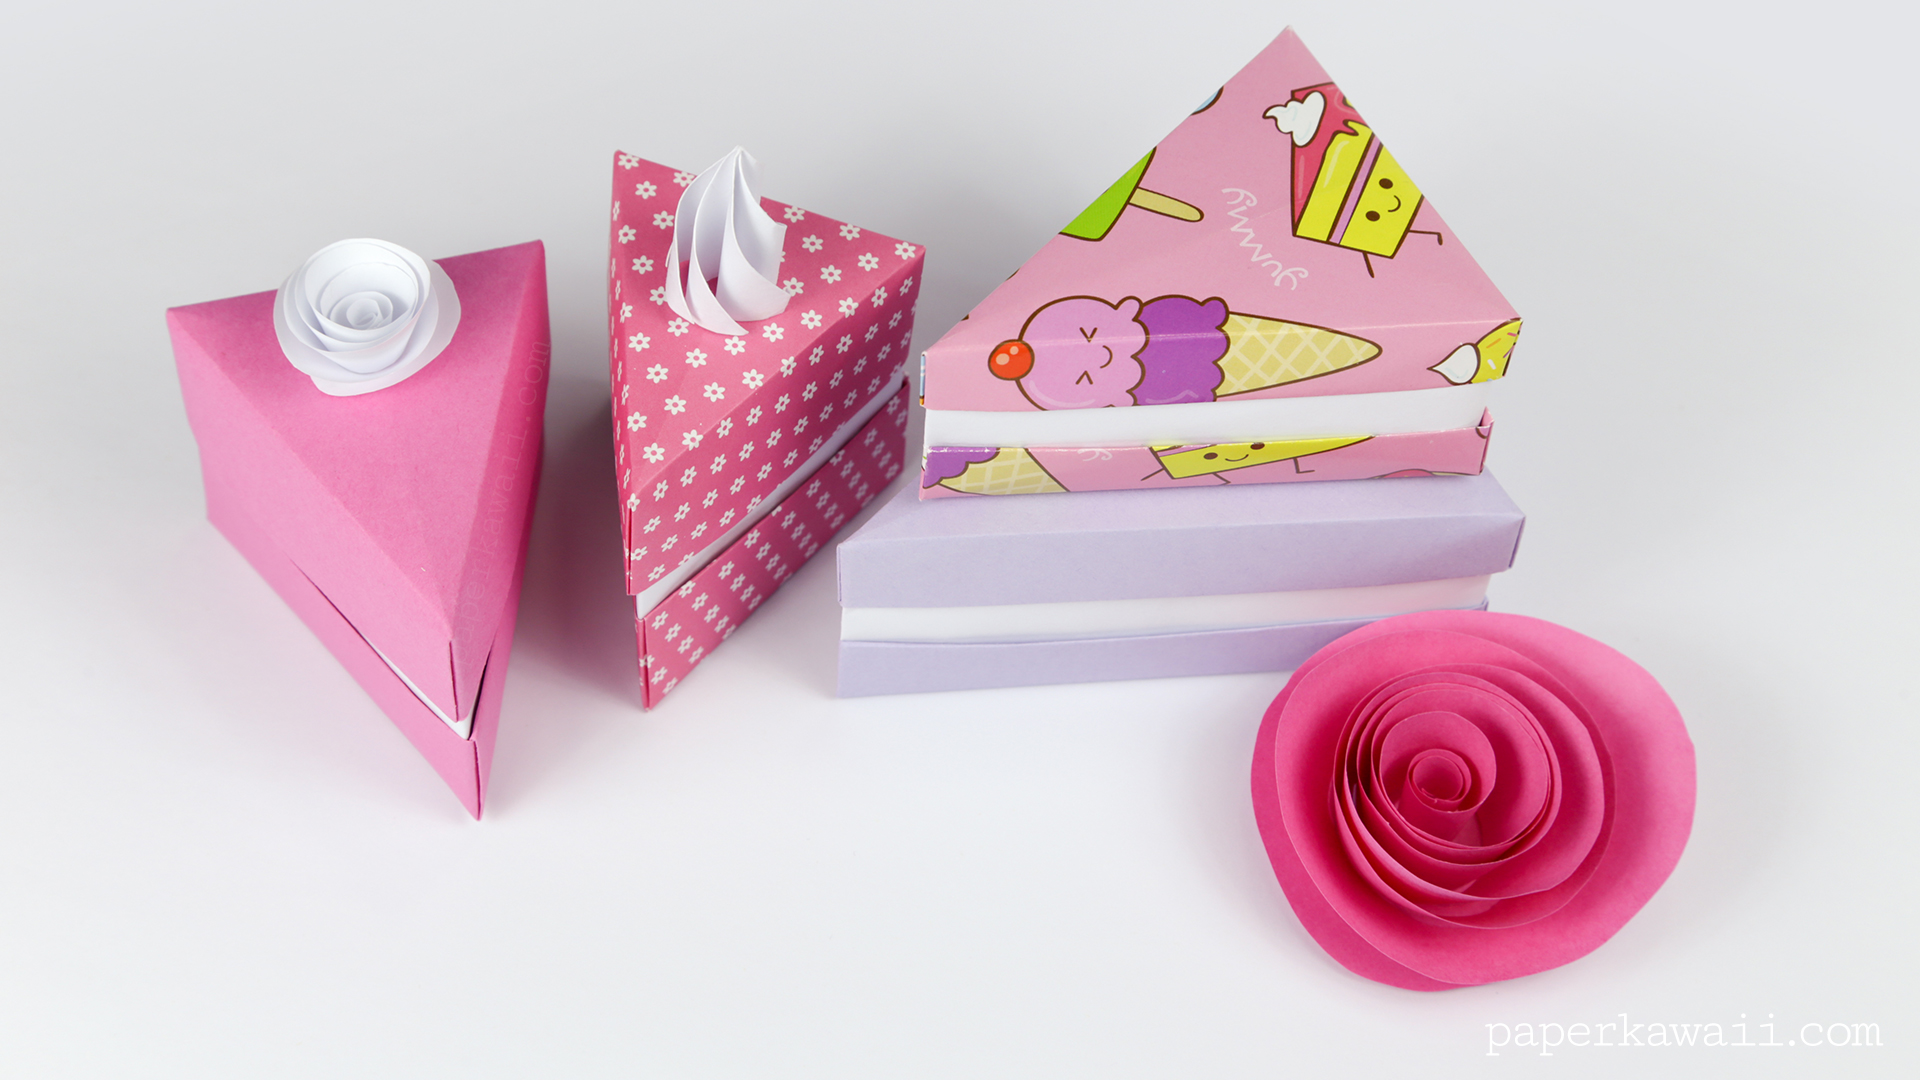 Origami cake slice box instructions paper kawaii a photo tutorial is available for the taller cake box on the origami photo tutorials page jeuxipadfo Choice Image